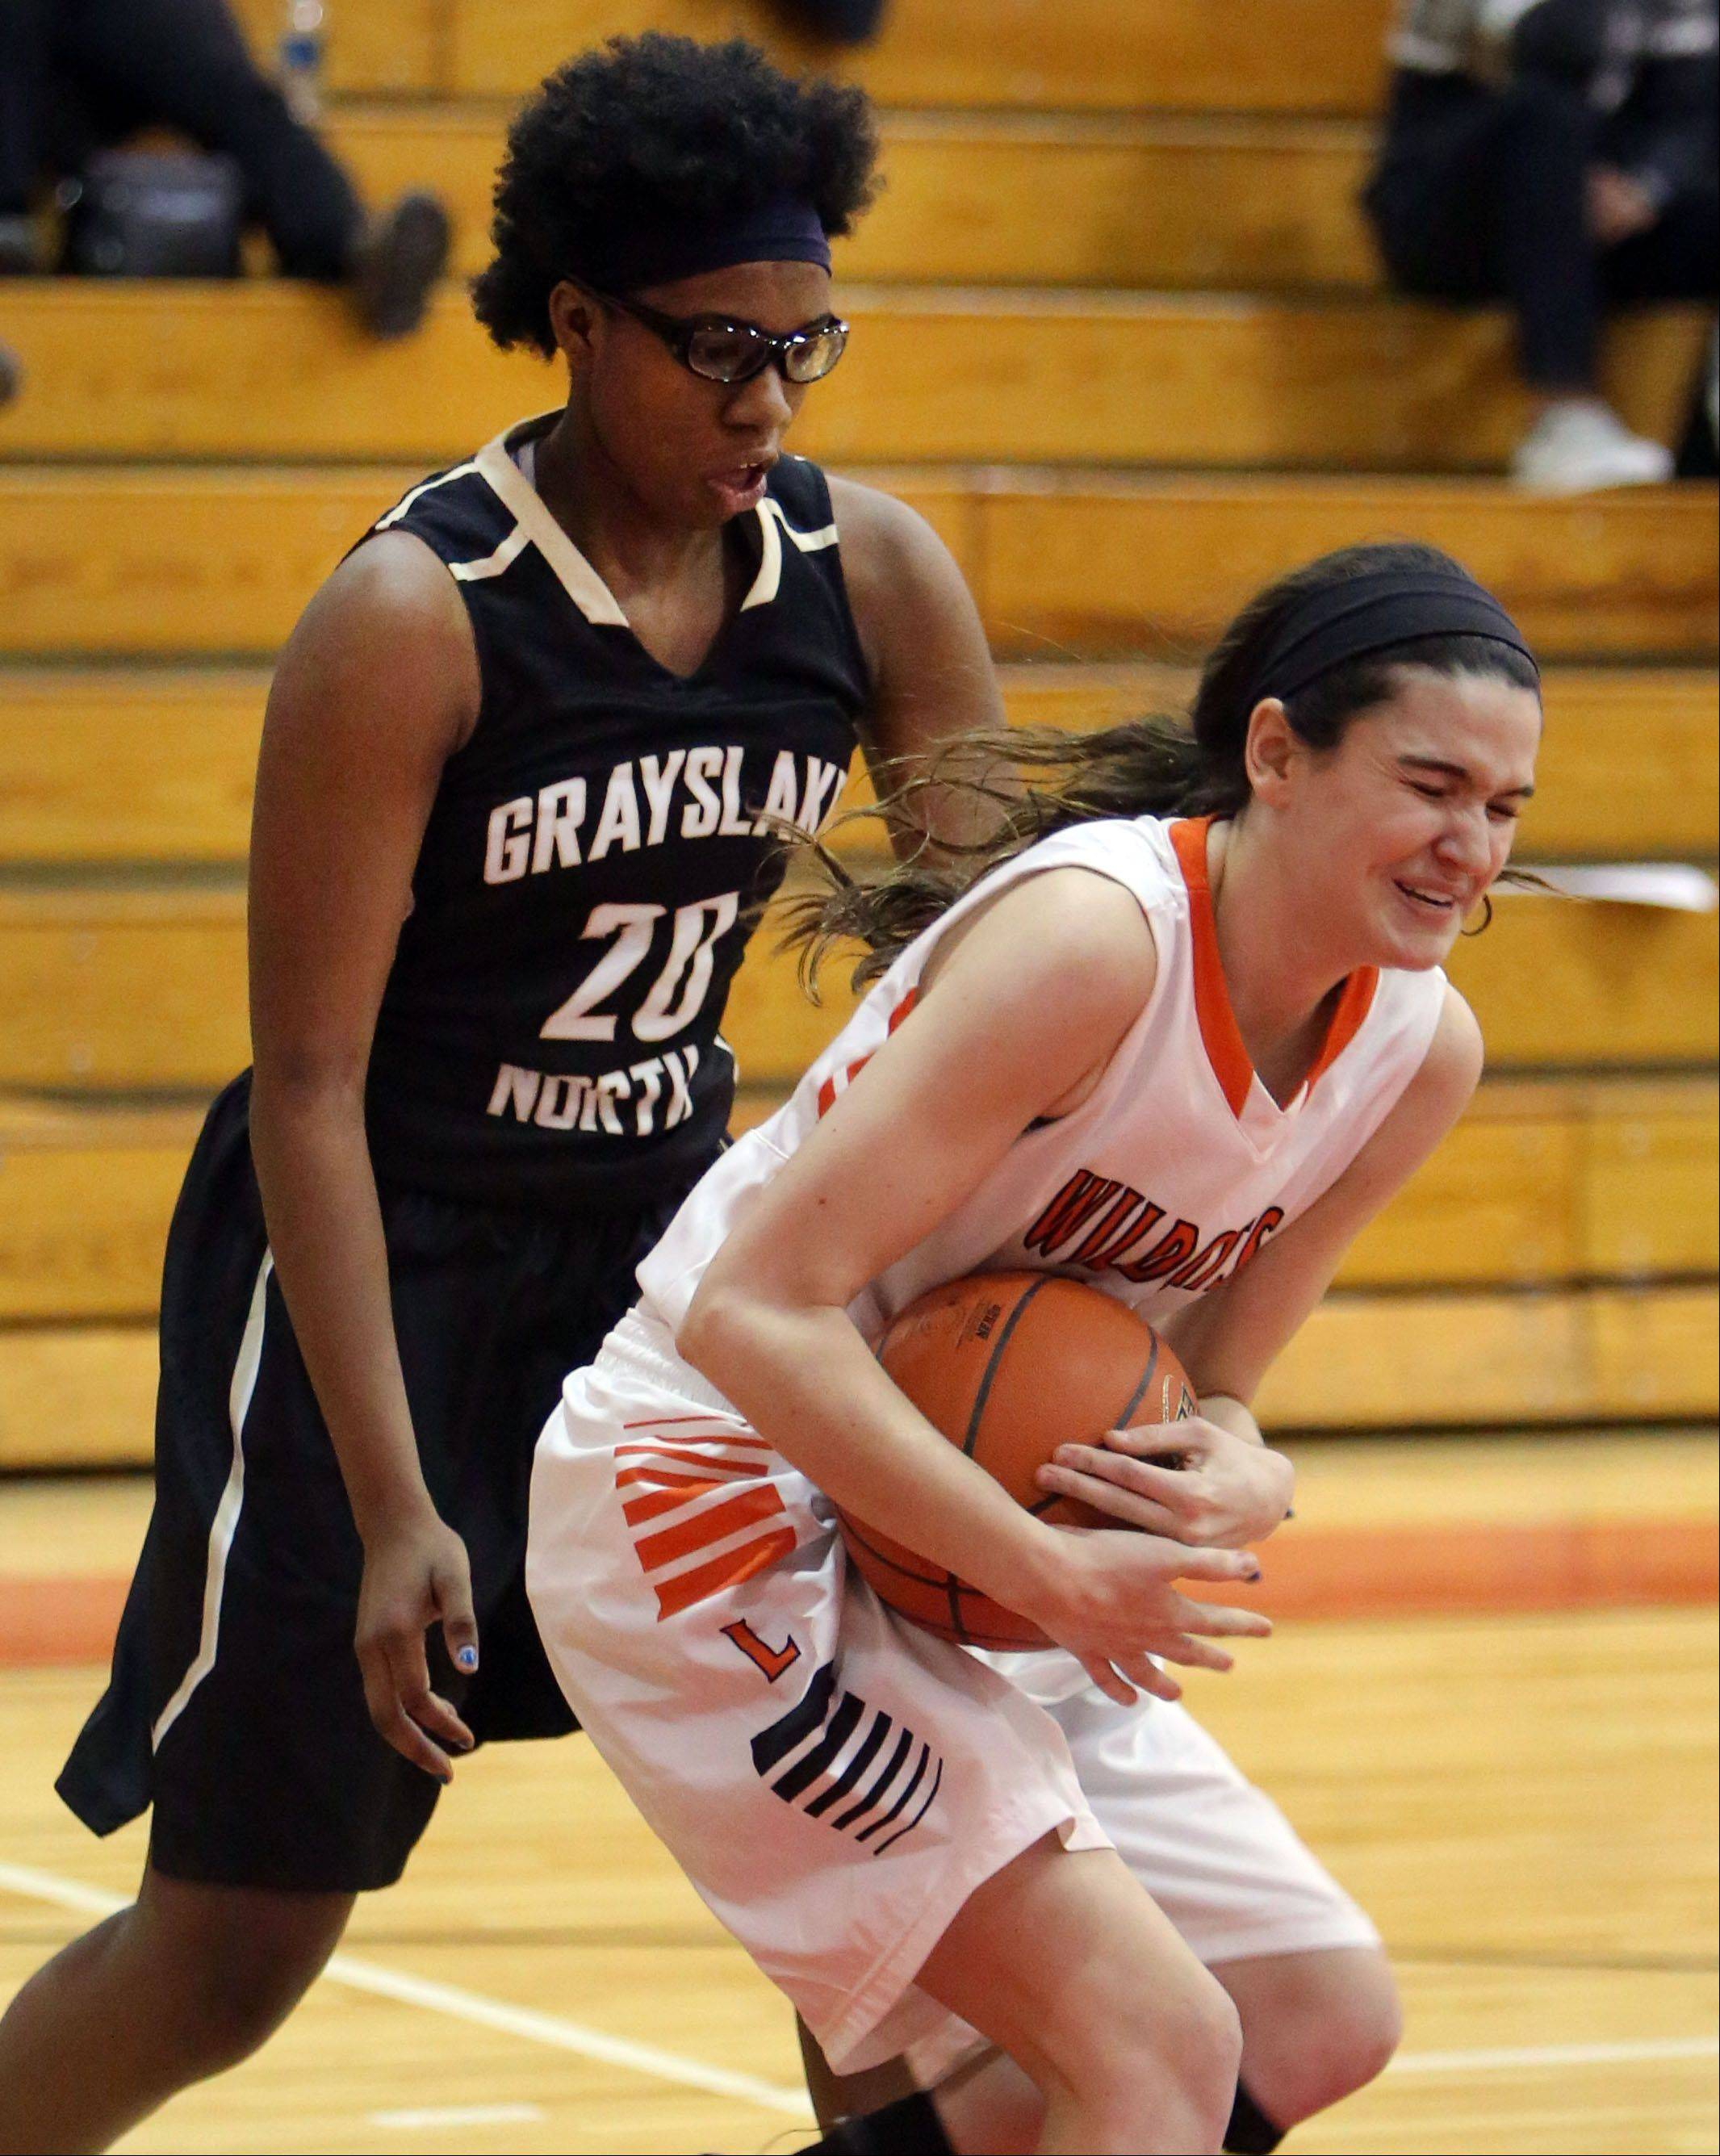 Grayslake North's Brittany Thibeaux, left, defends against Libertyville's Erin Dunleavy on Thursday at Mundelein High School.